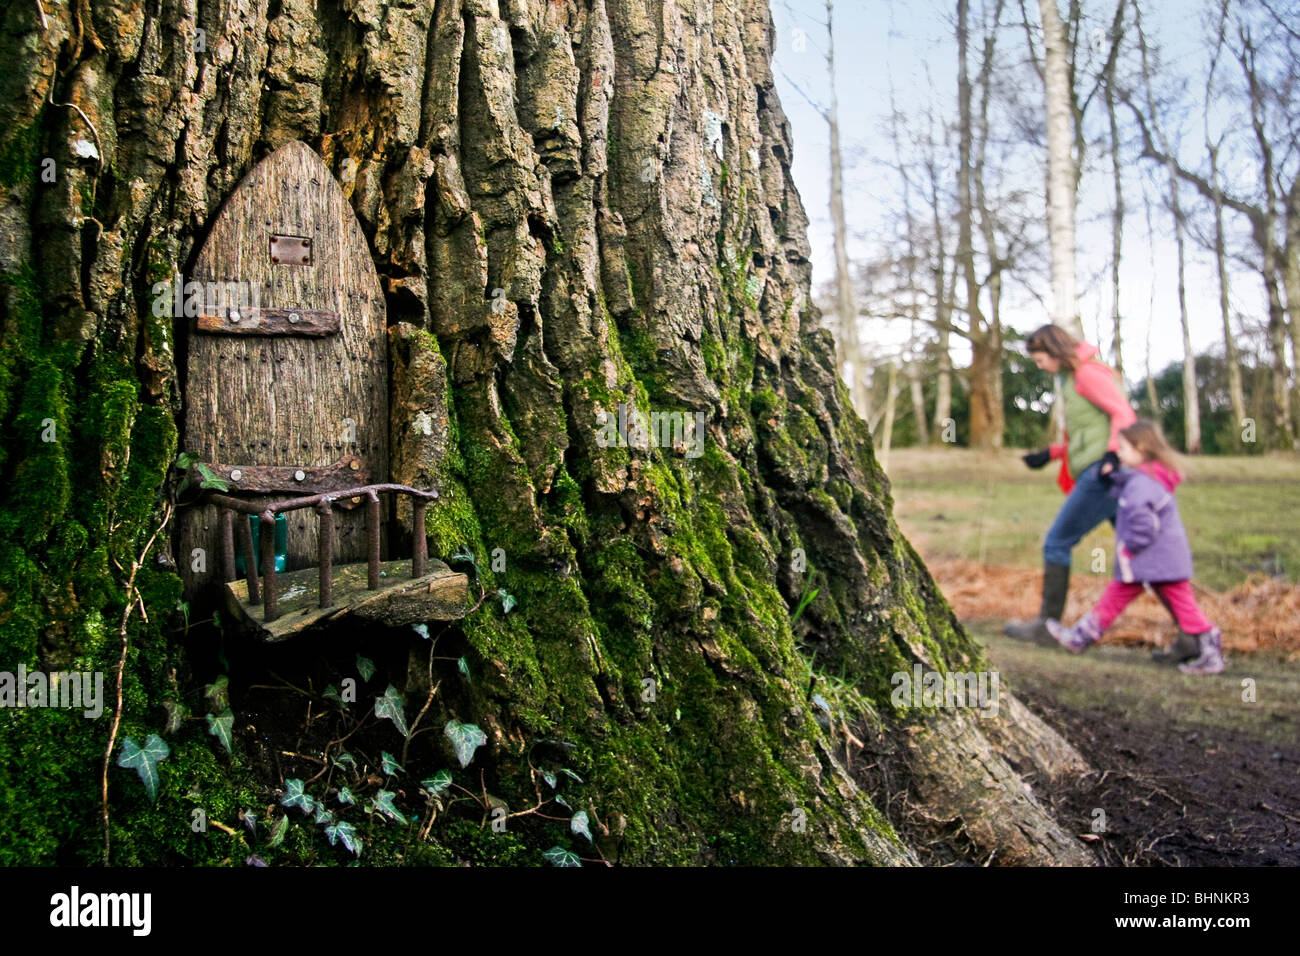 A fairy door in a magical woodland tree stock photo for The magic fairy door